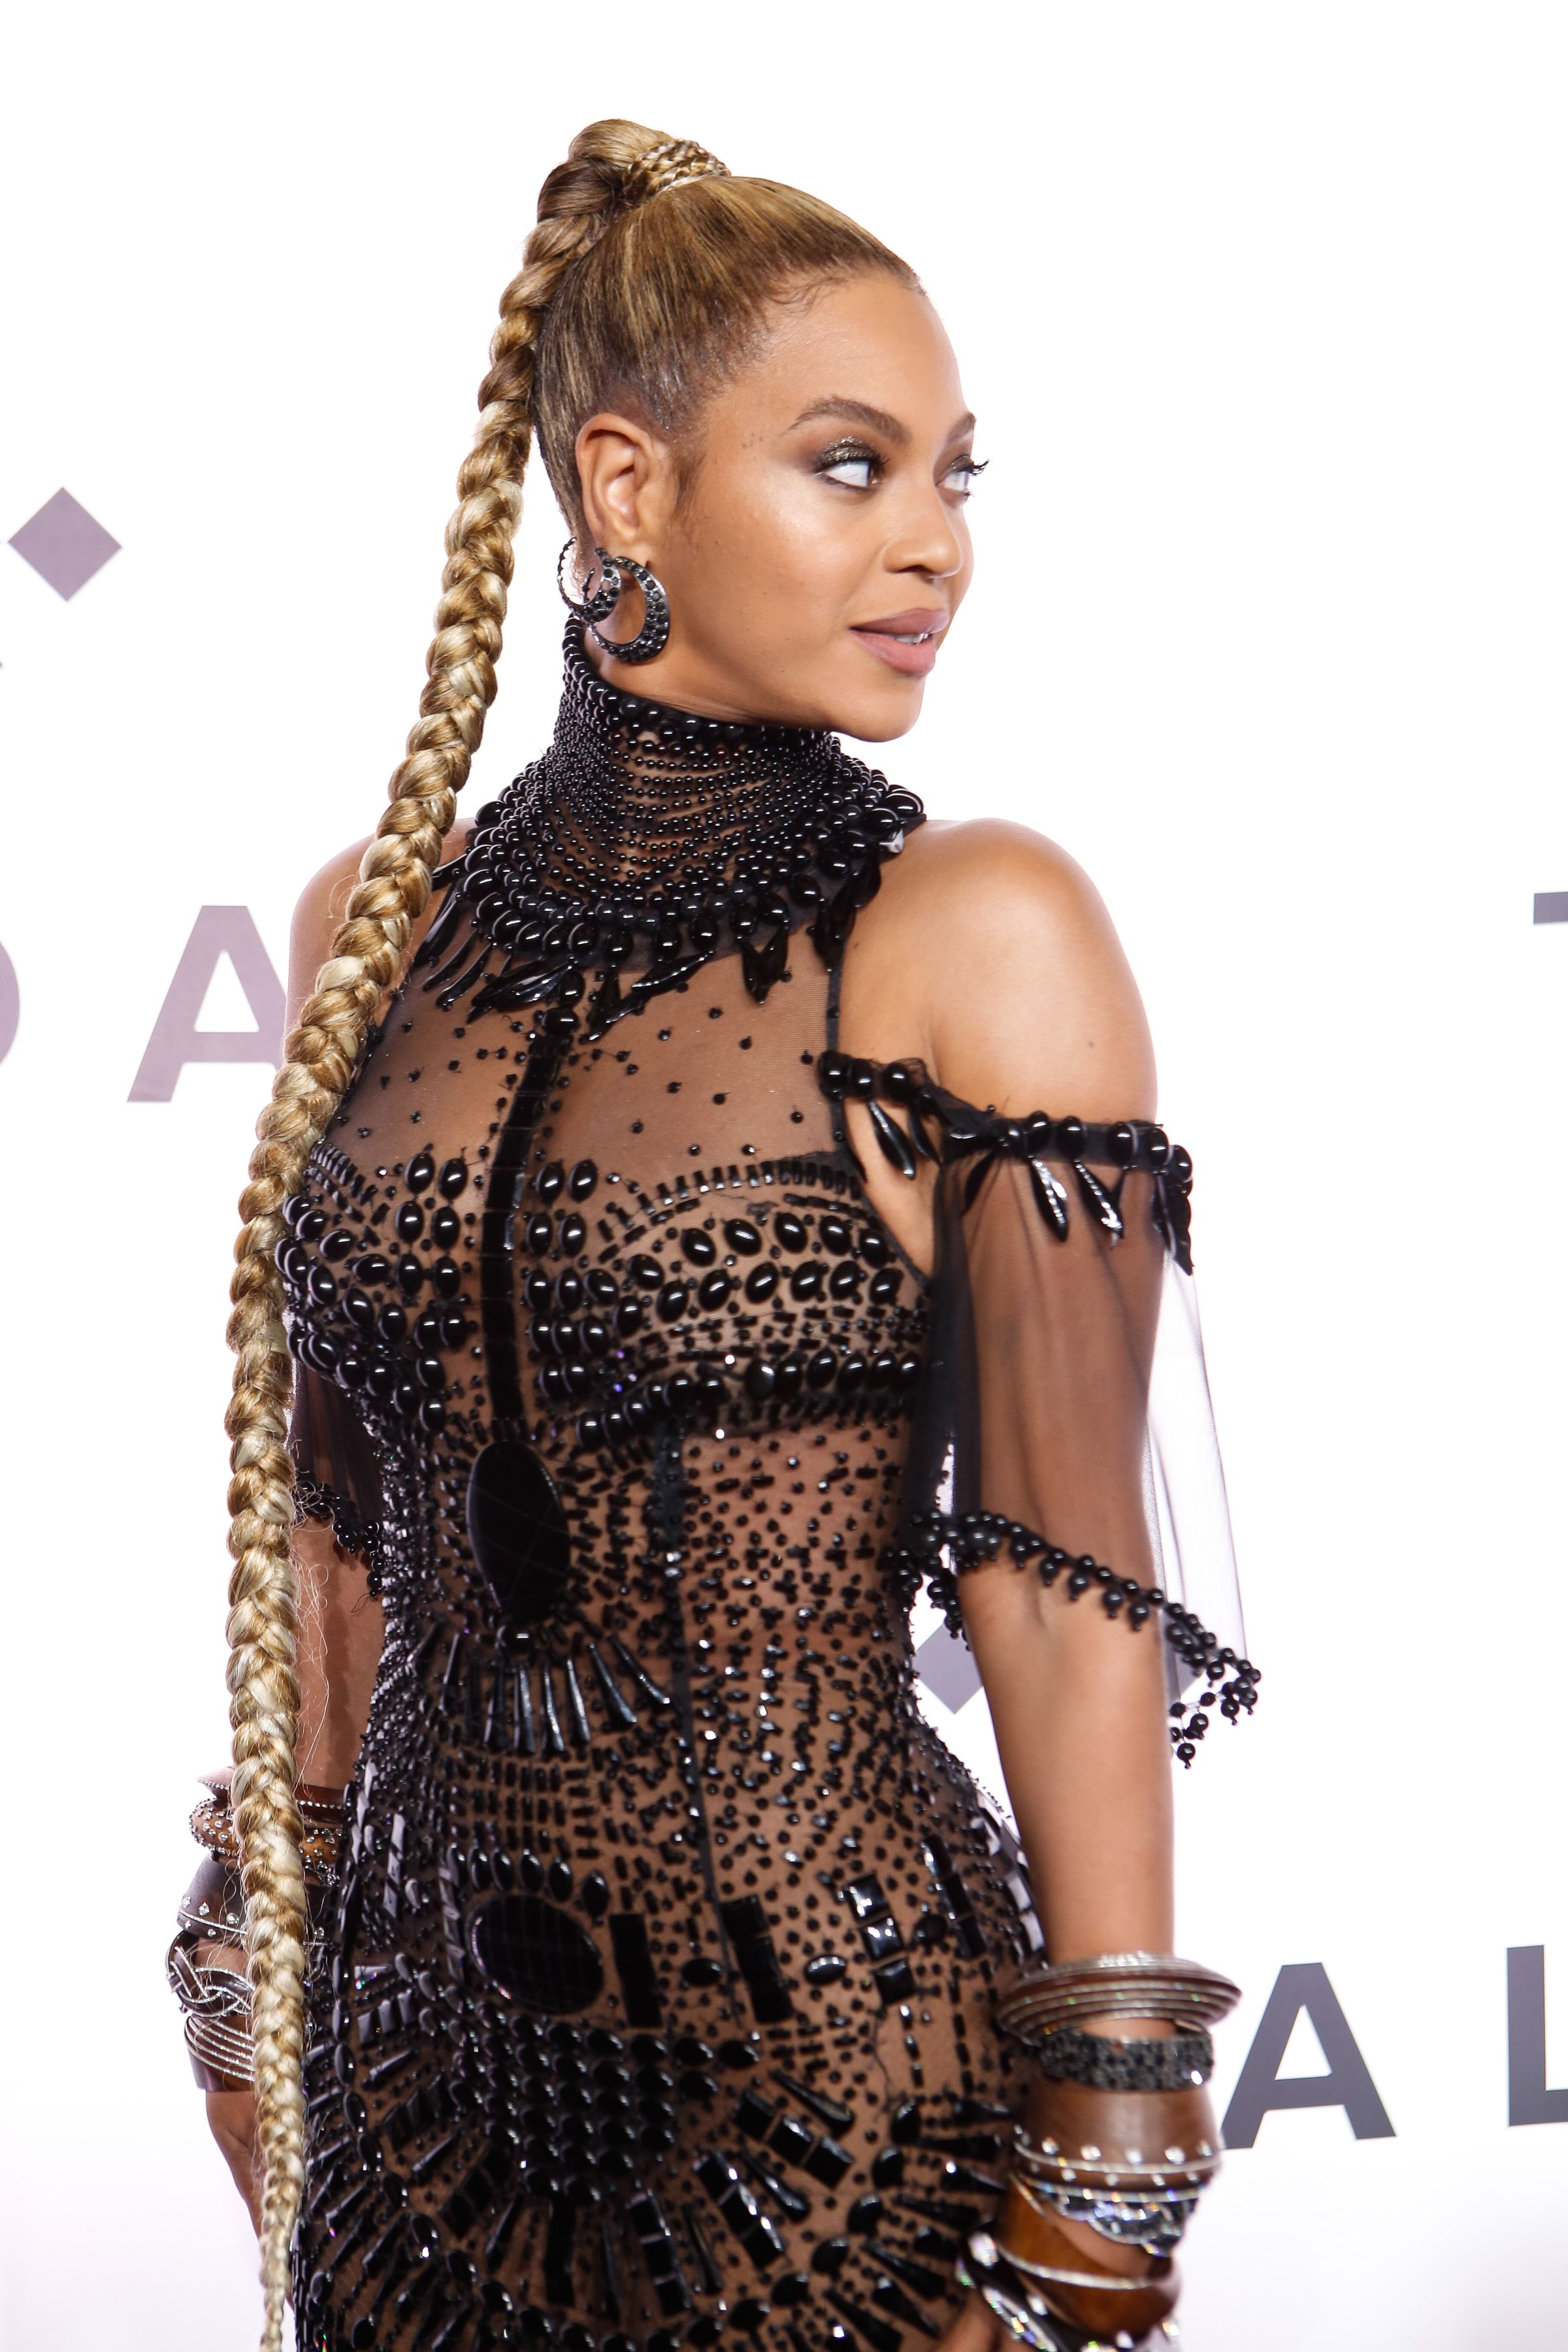 Beyoncé This obedient braid gave us this iconic hair moment .